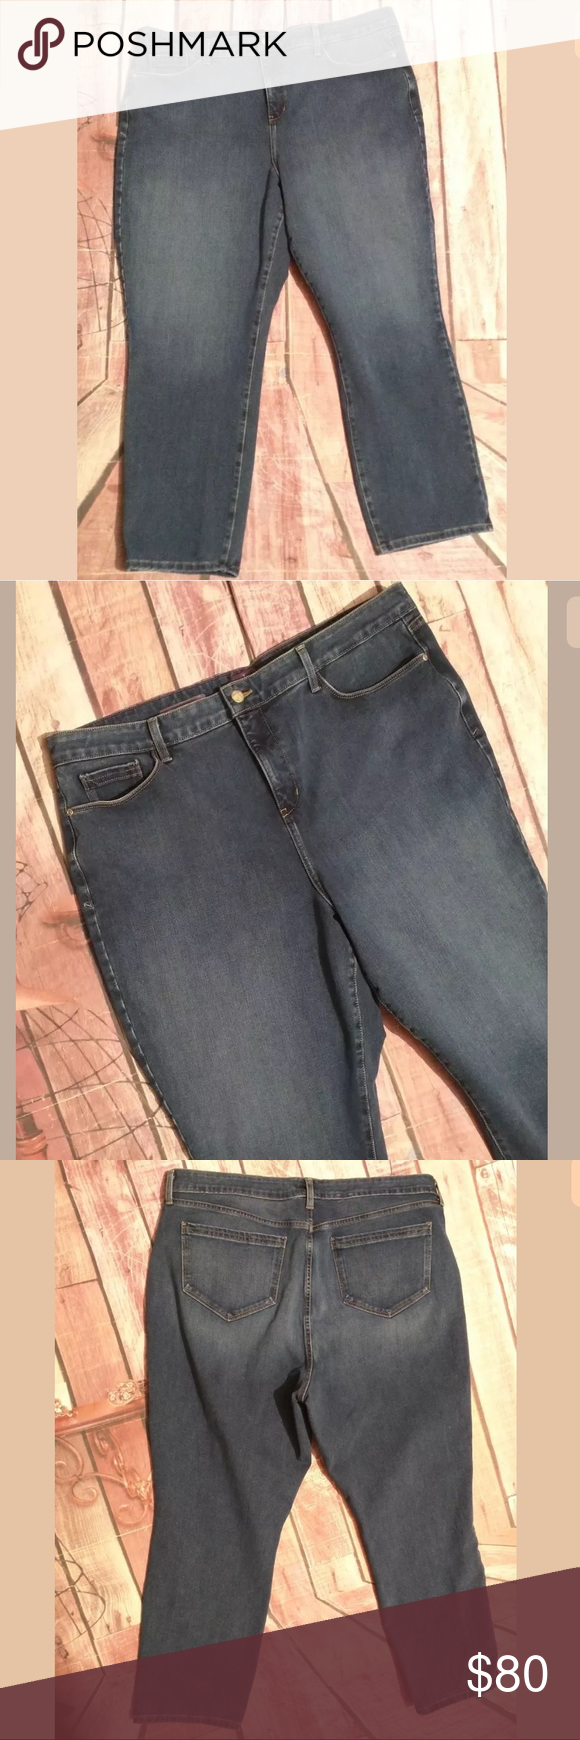 76de8a1462177 NYDJ NOT YOUR DAUGHTERS JEANS Relaxed Ankle👖 NYDJ NOT YOUR DAUGHTERS JEANS  Womens PLUS 20W